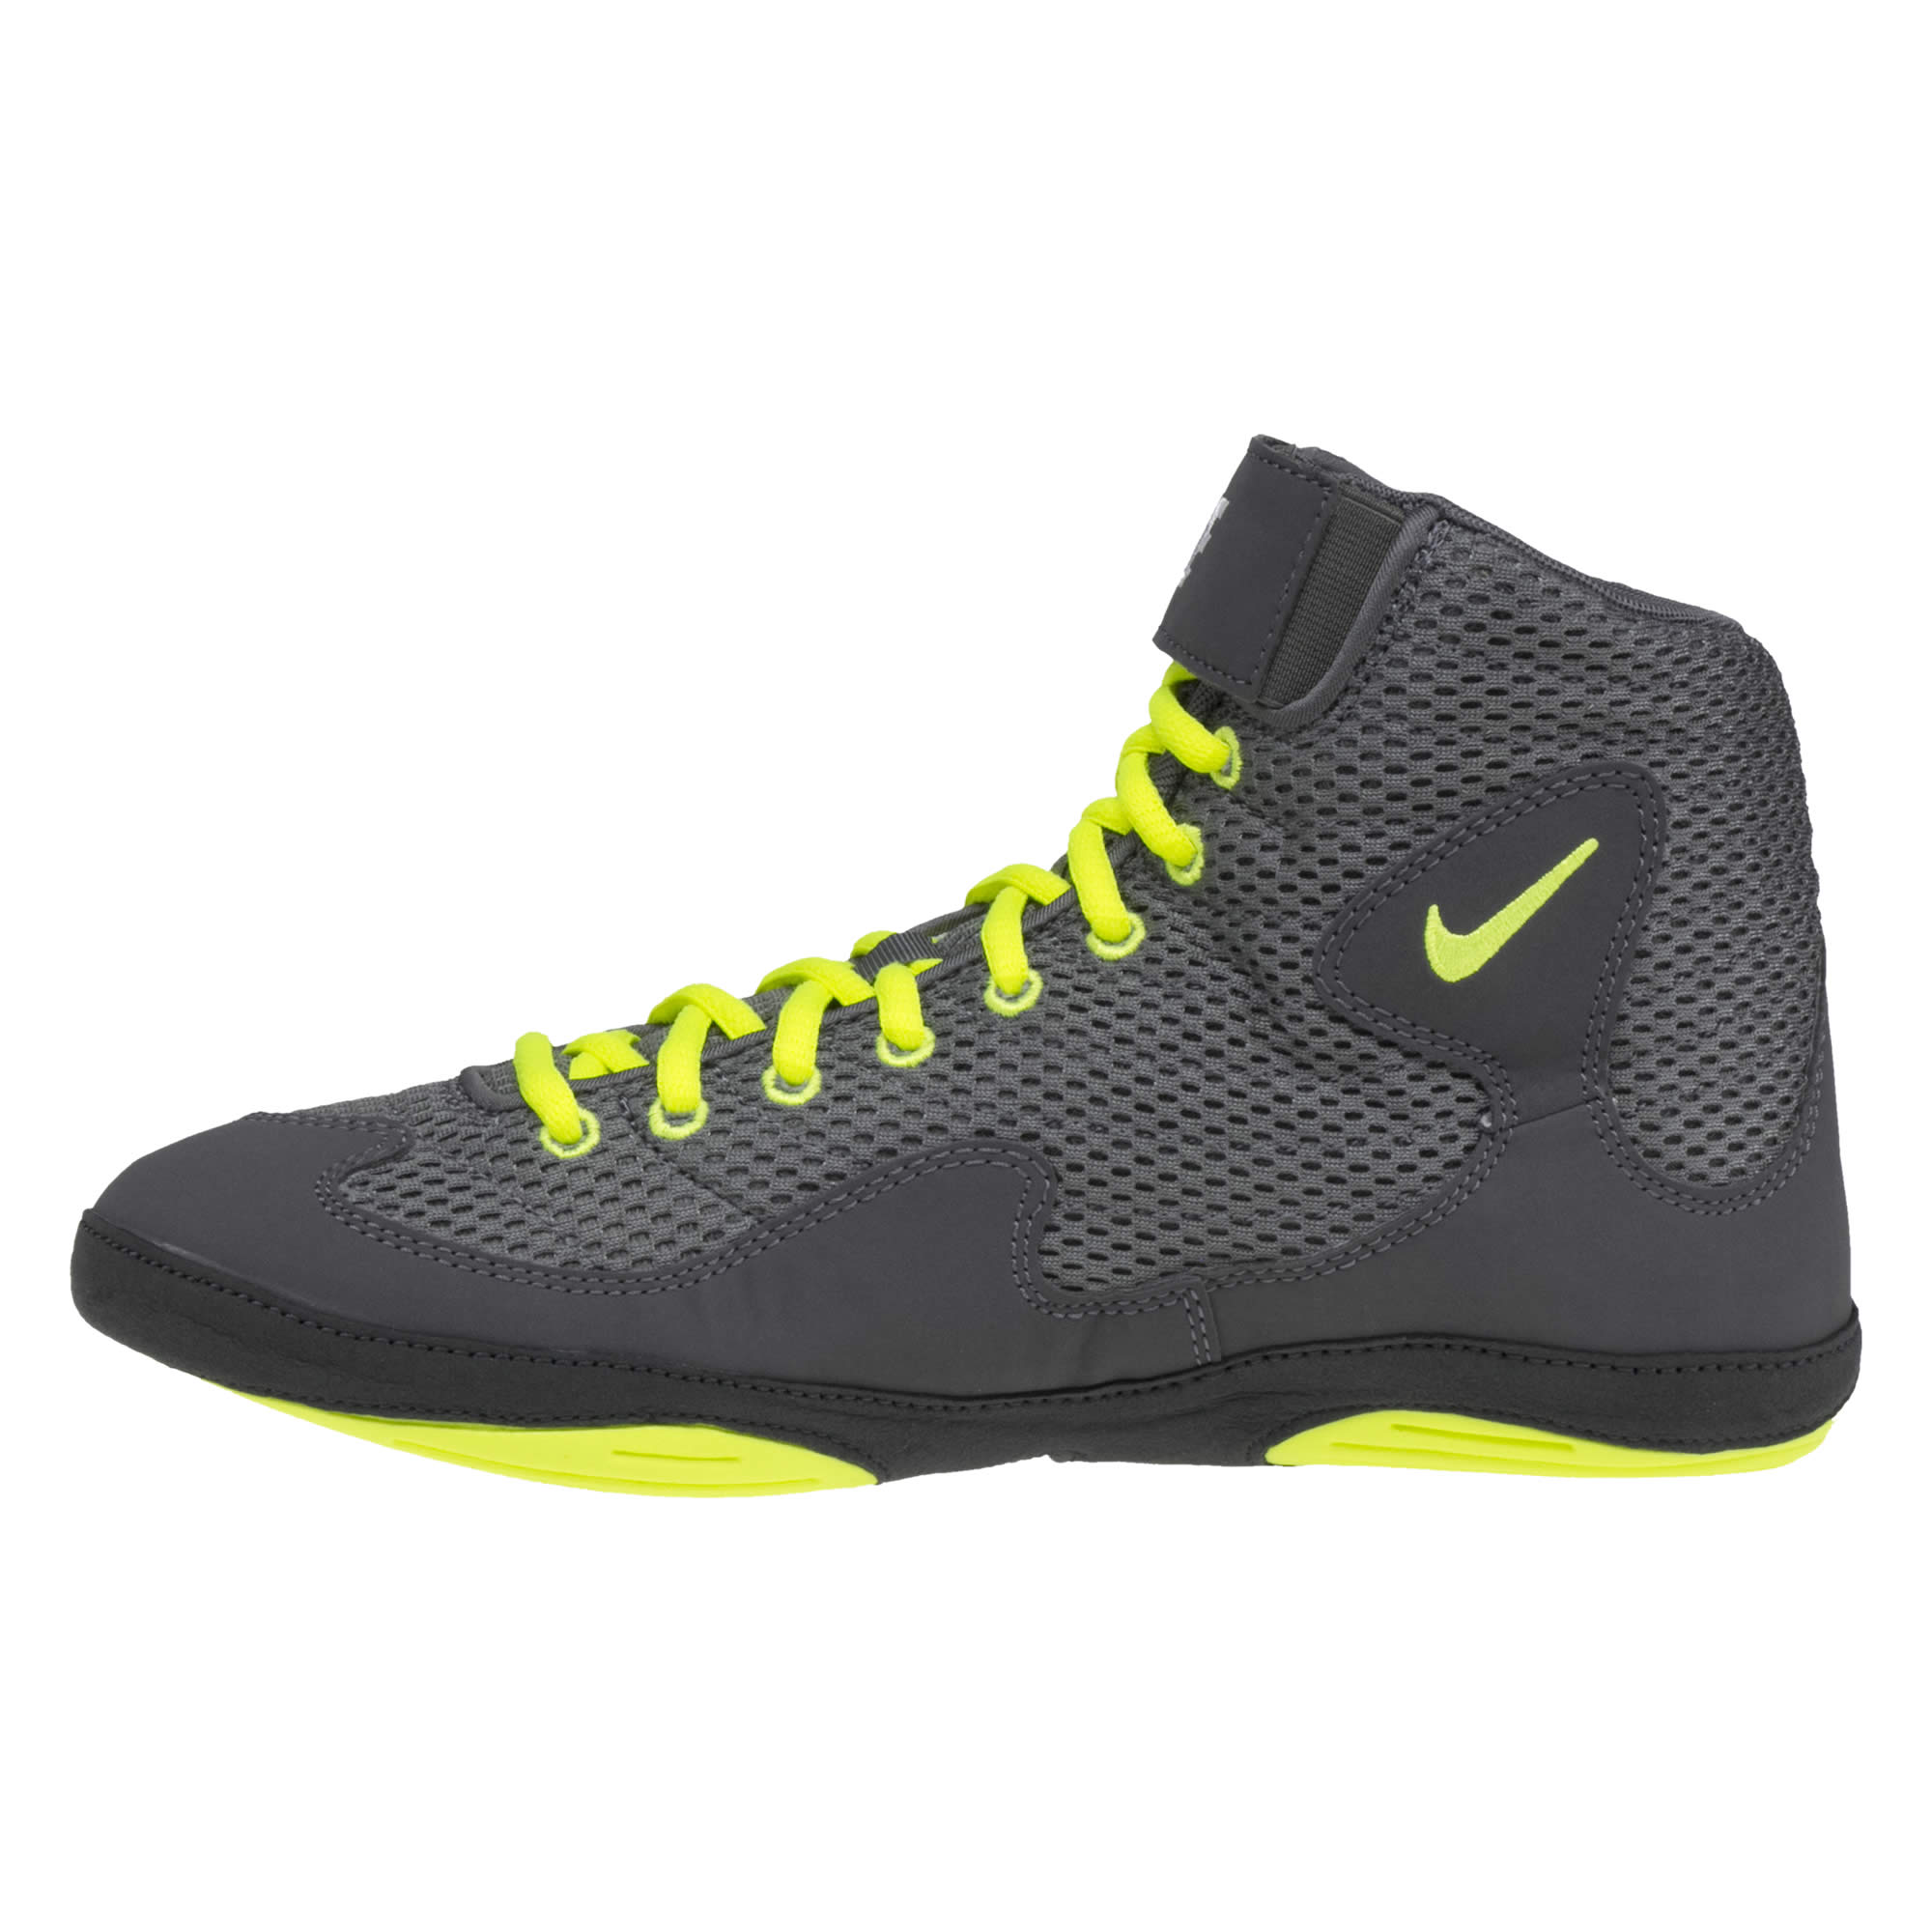 Nike Inflict 3 Shoes | WrestlingMart | Free Shipping